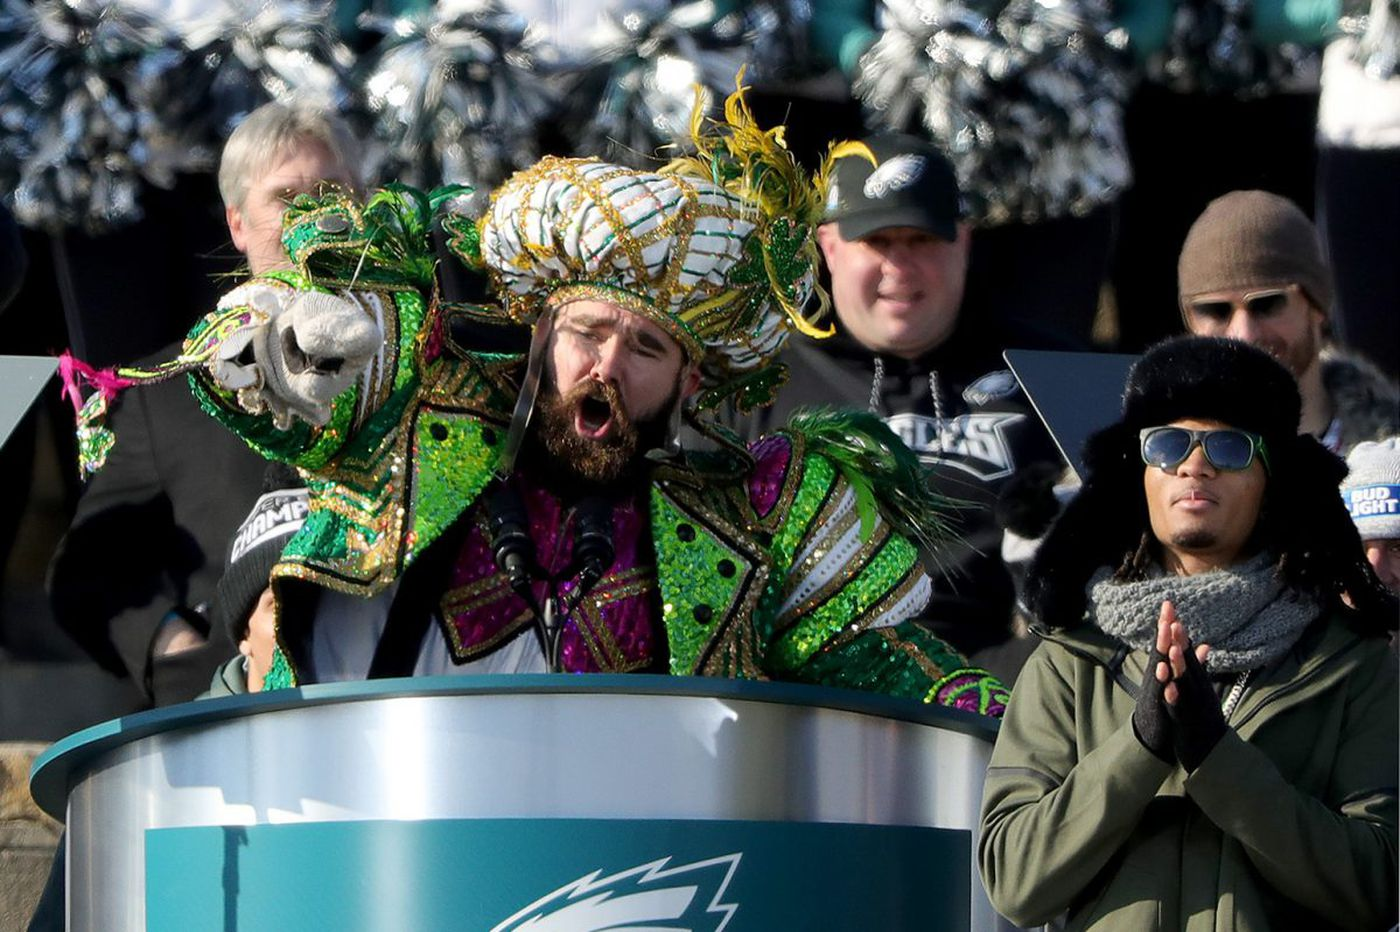 The underdogs: How Jason Kelce's speech can help build resiliency in children